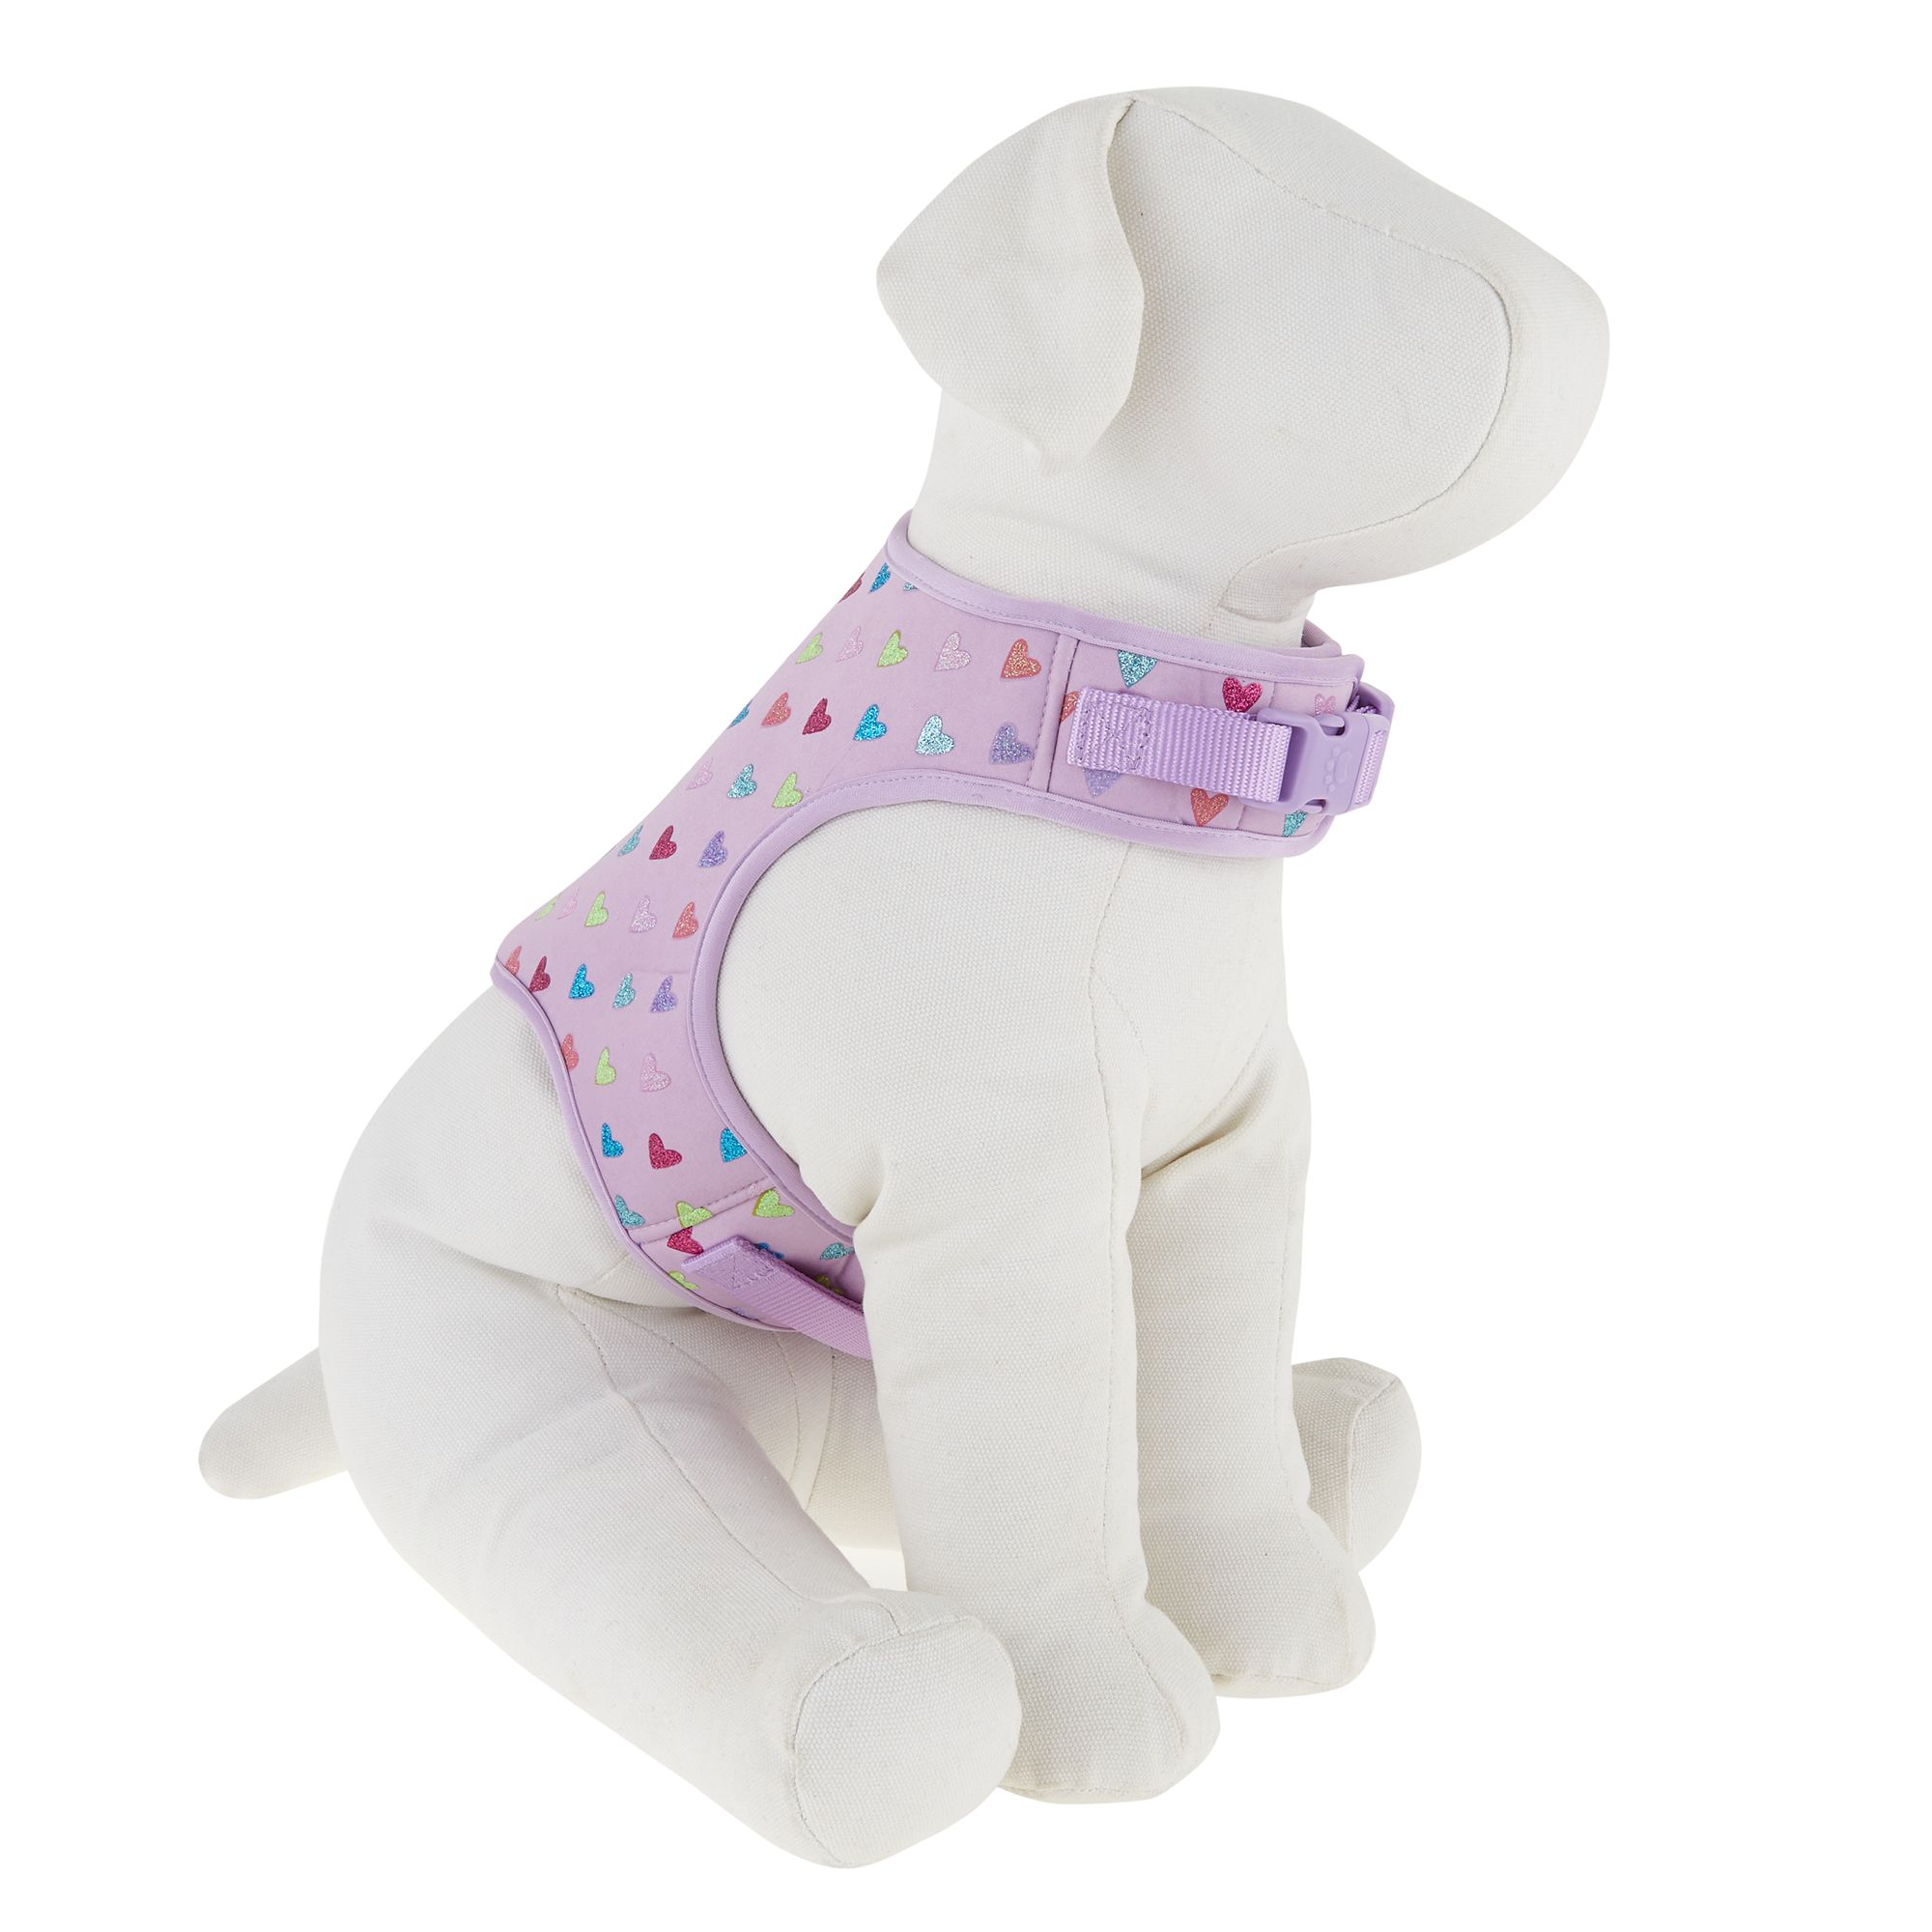 Top Paw Hearts Vest Puppy Dog Harness Size X Small Dog Harness